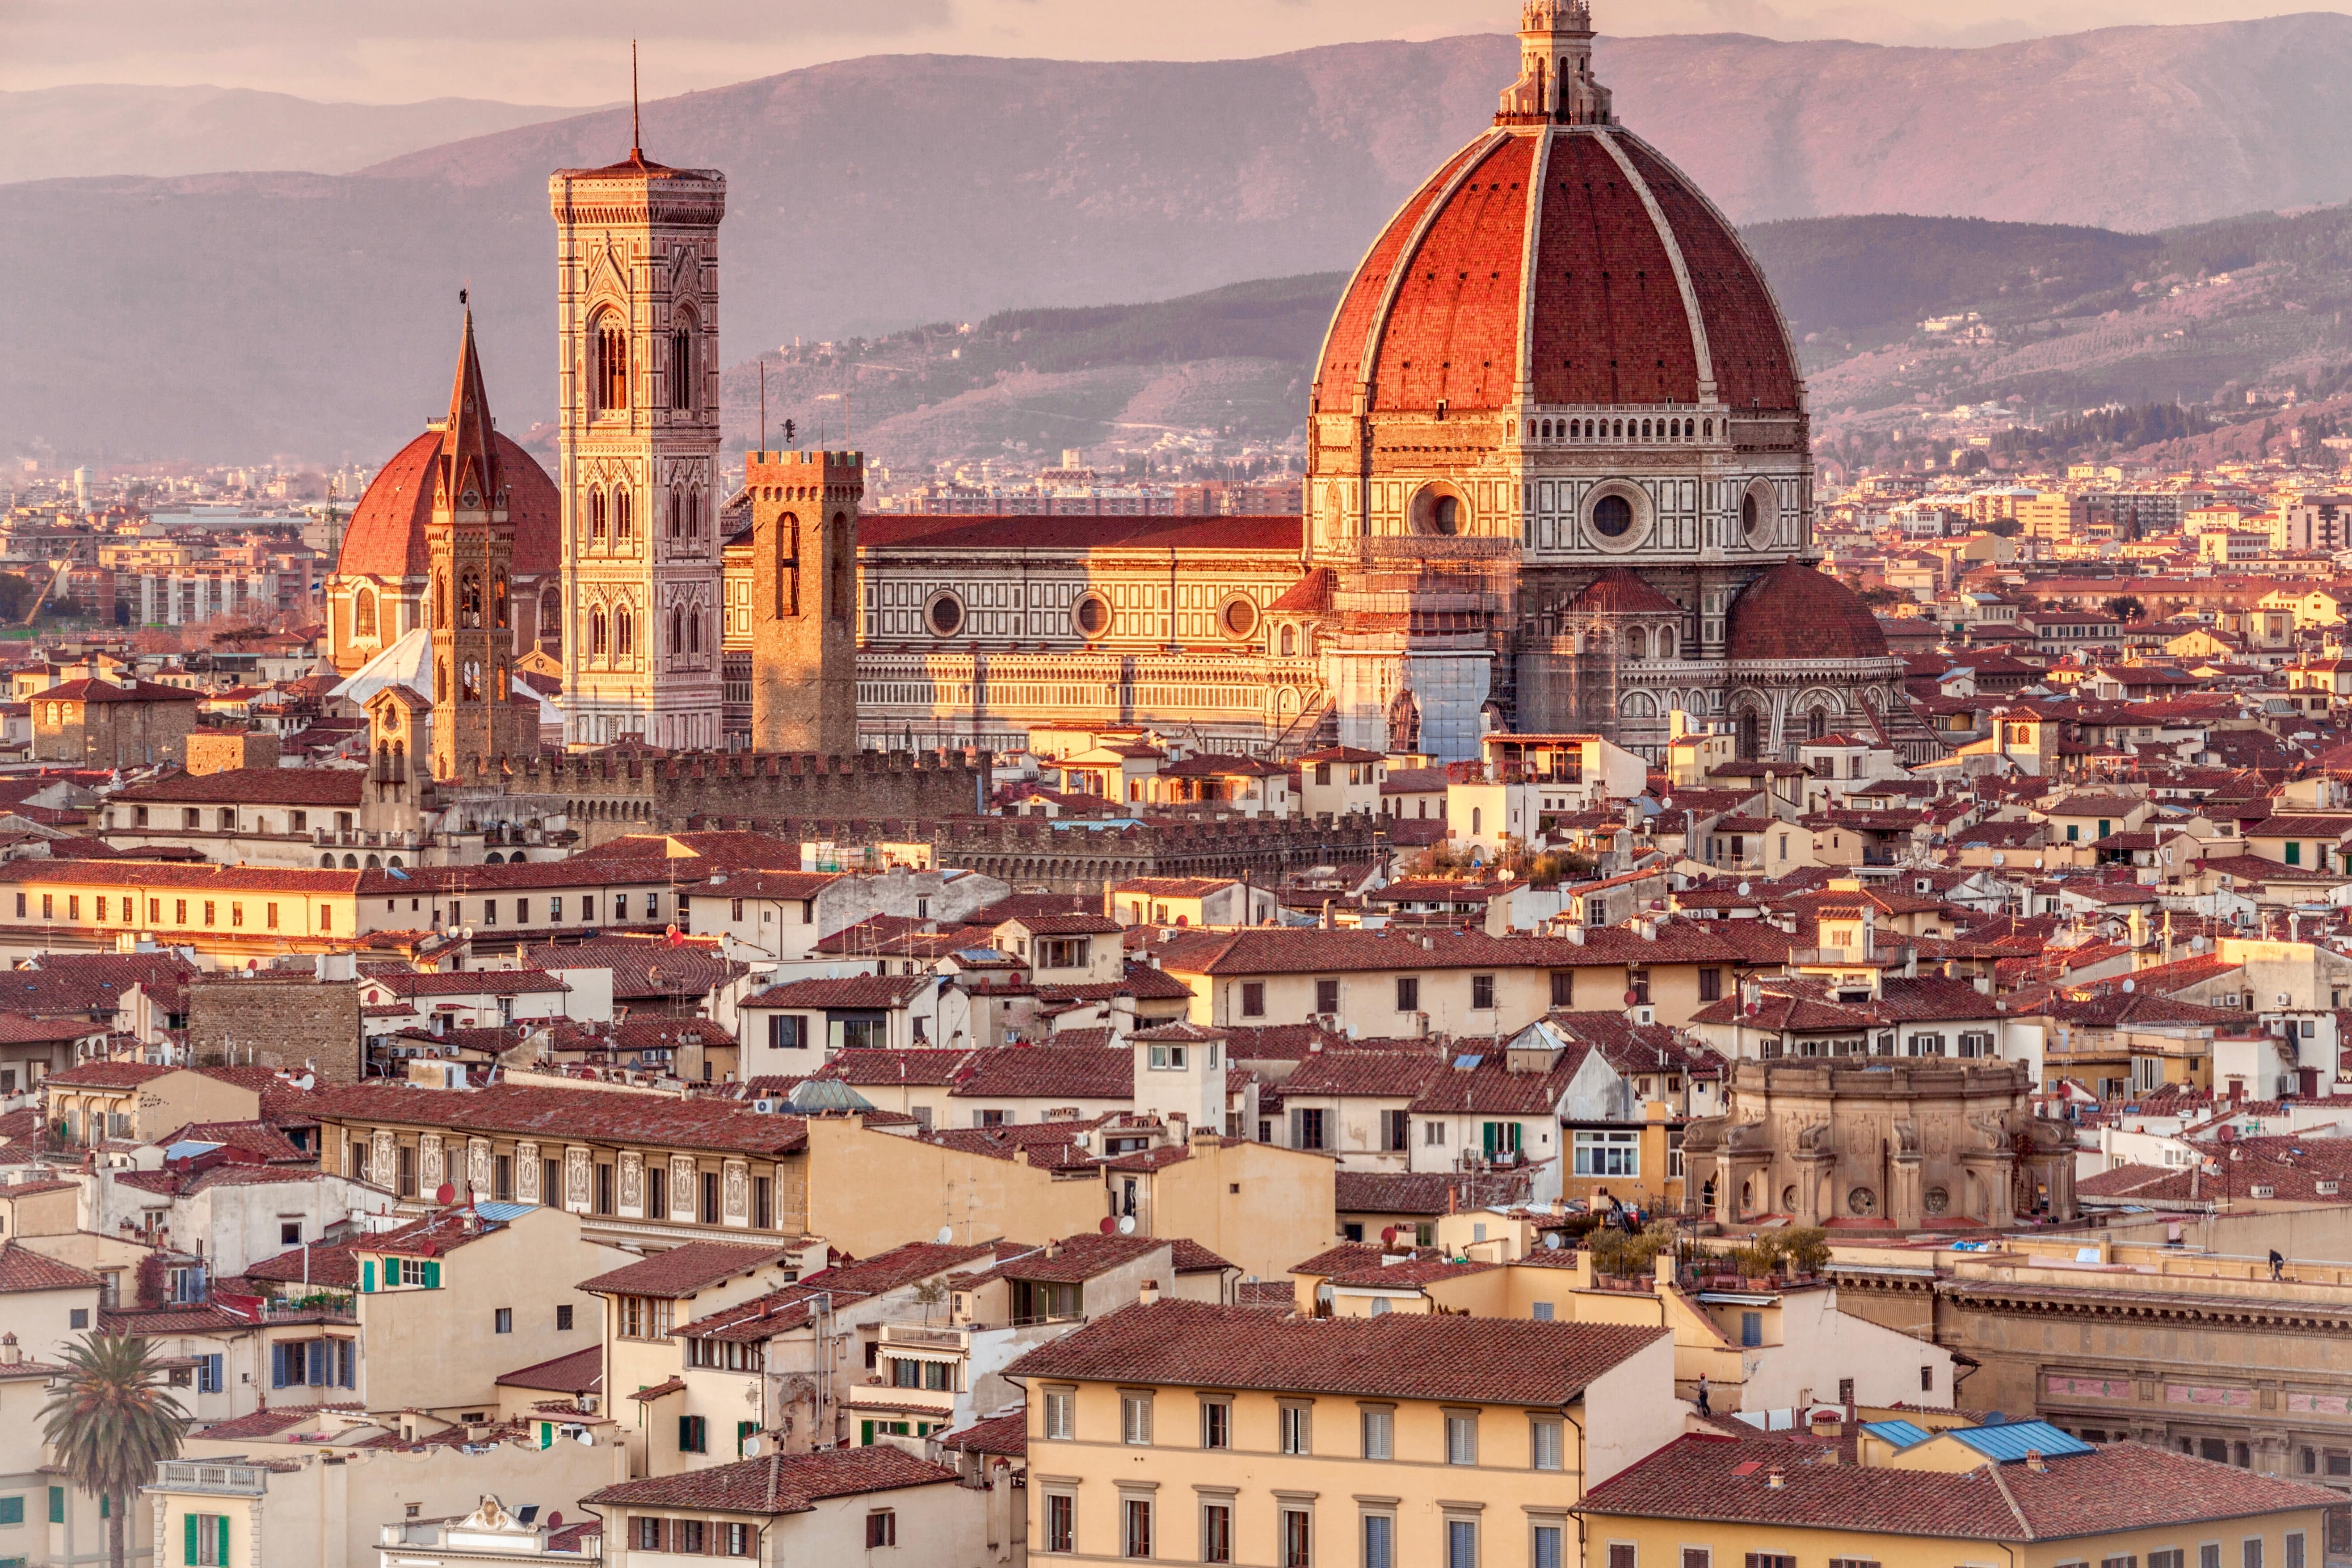 Florence is a beautiful place to visit in Italy